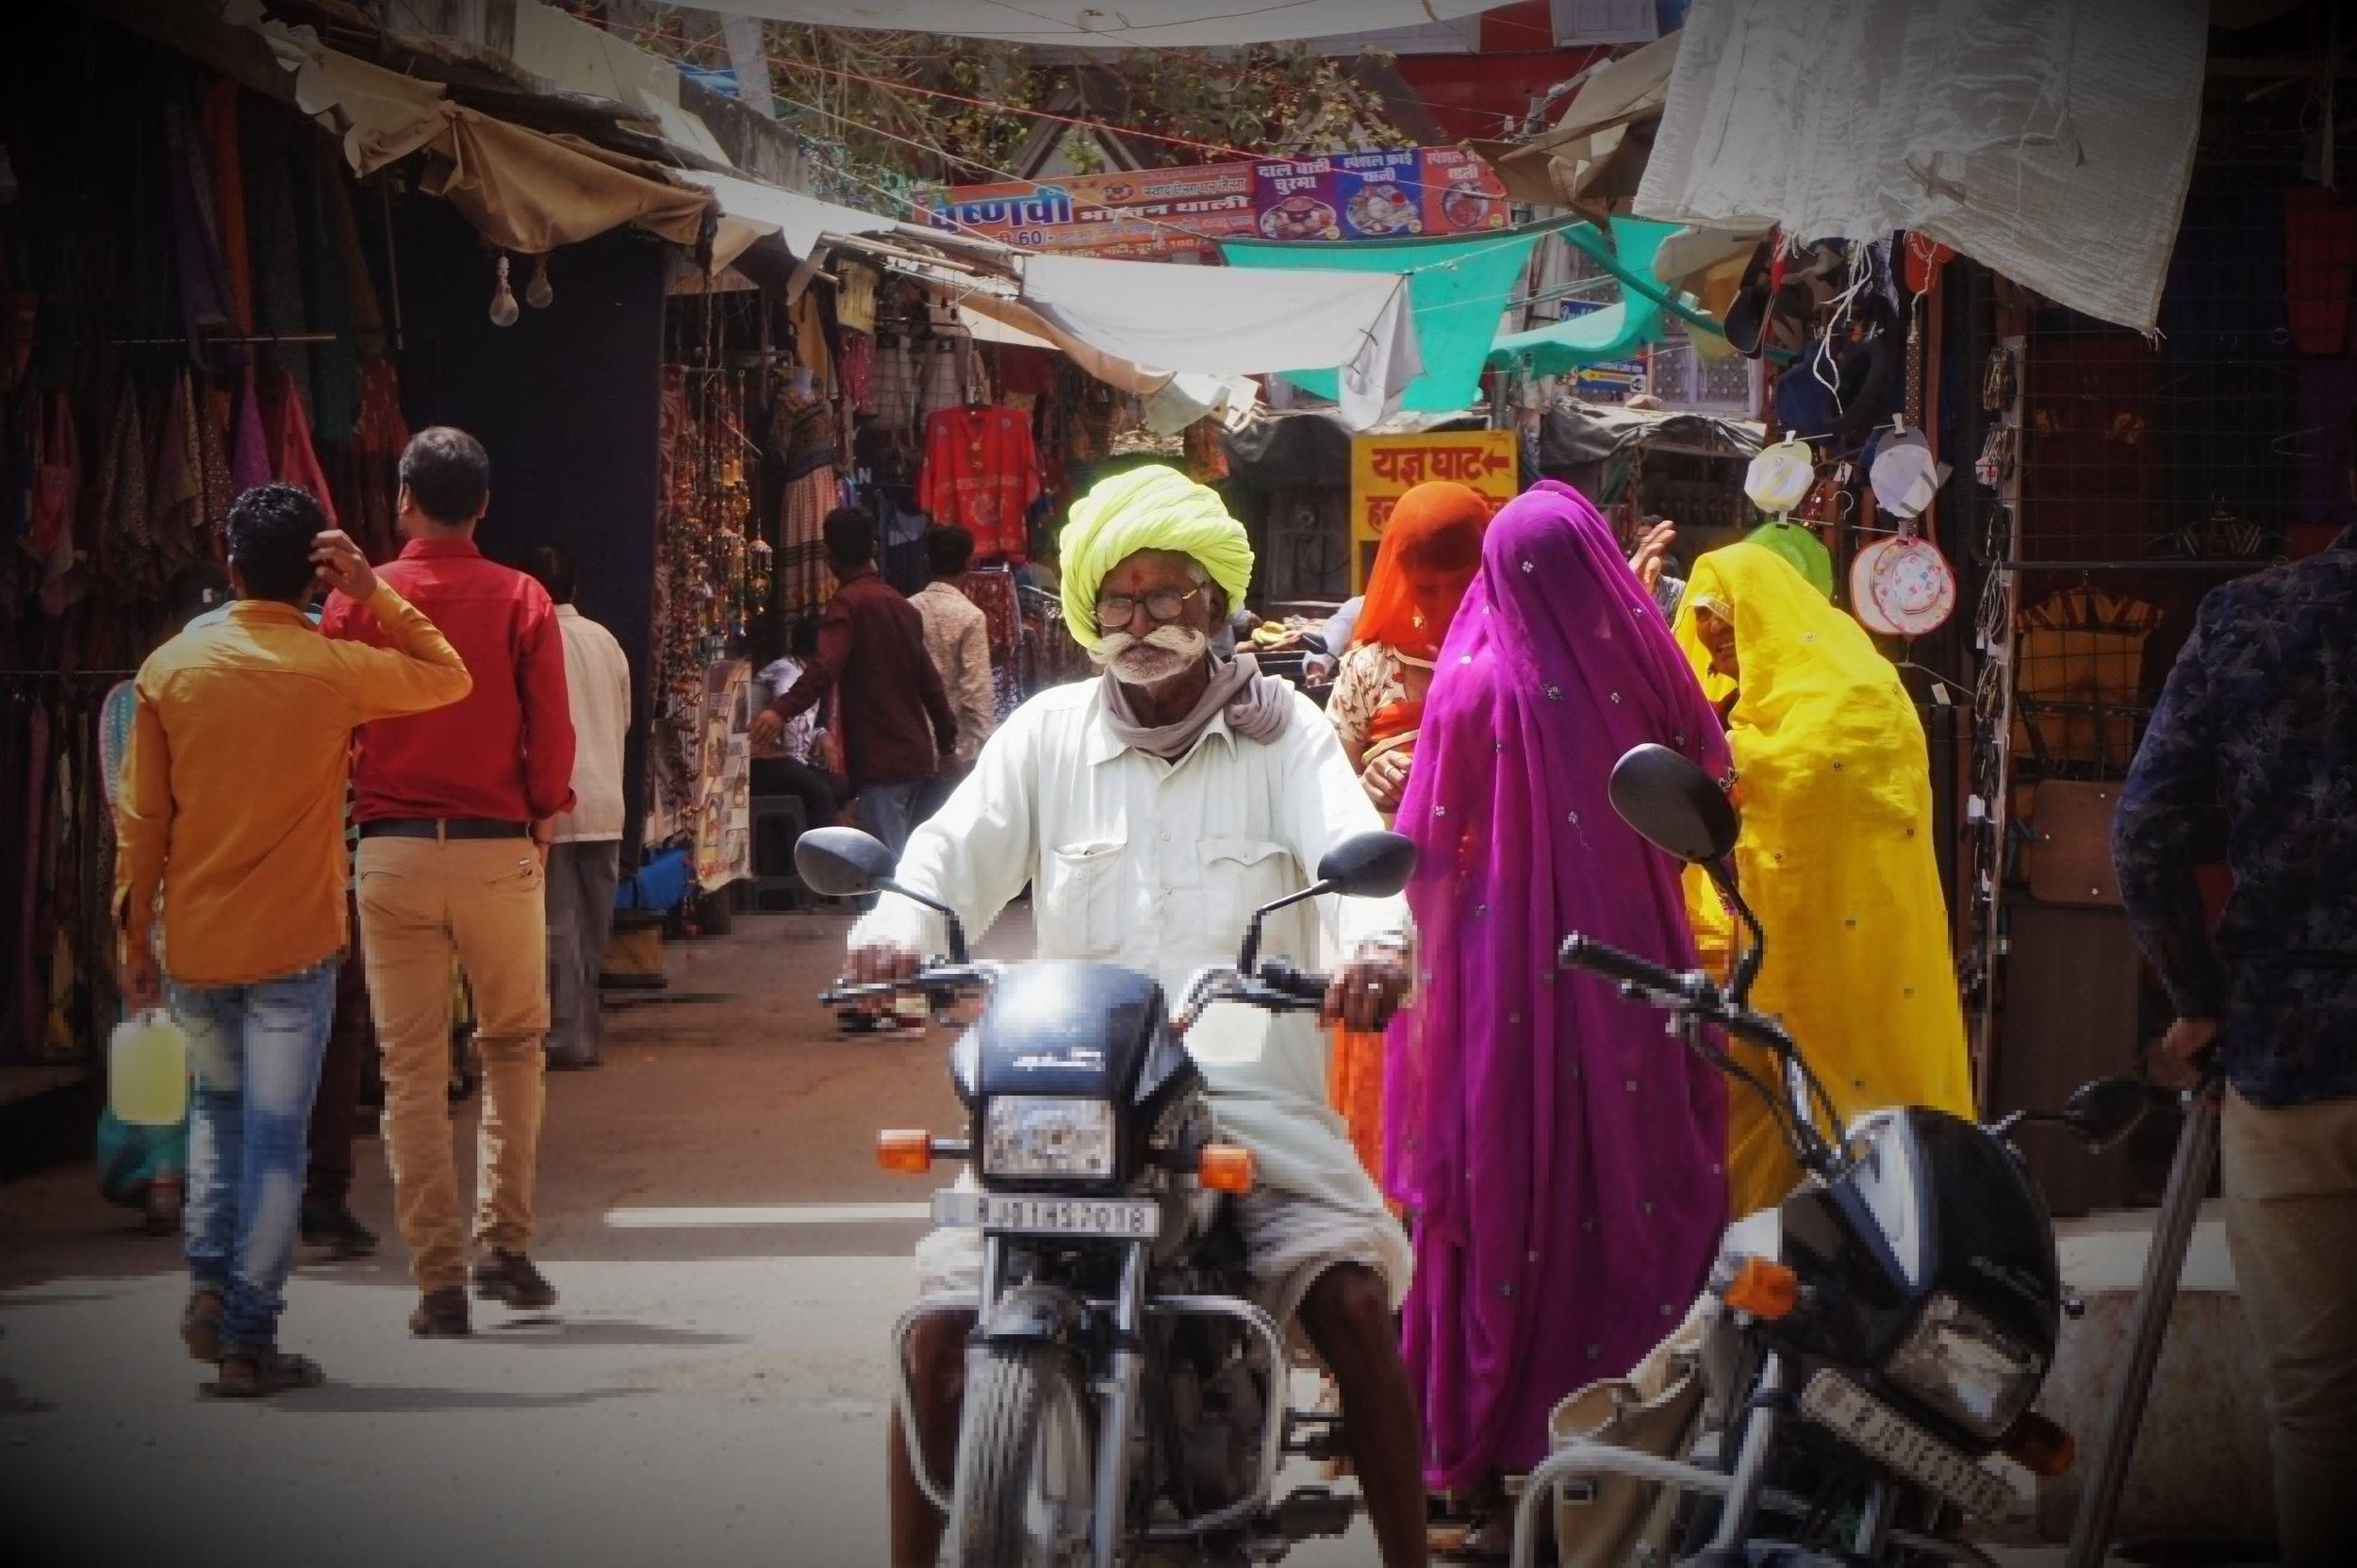 The people and the culture will add a lot of colour and interesting experiences to your Rajasthan itinerary! There are so many beautiful things to do in  Rajasthan.